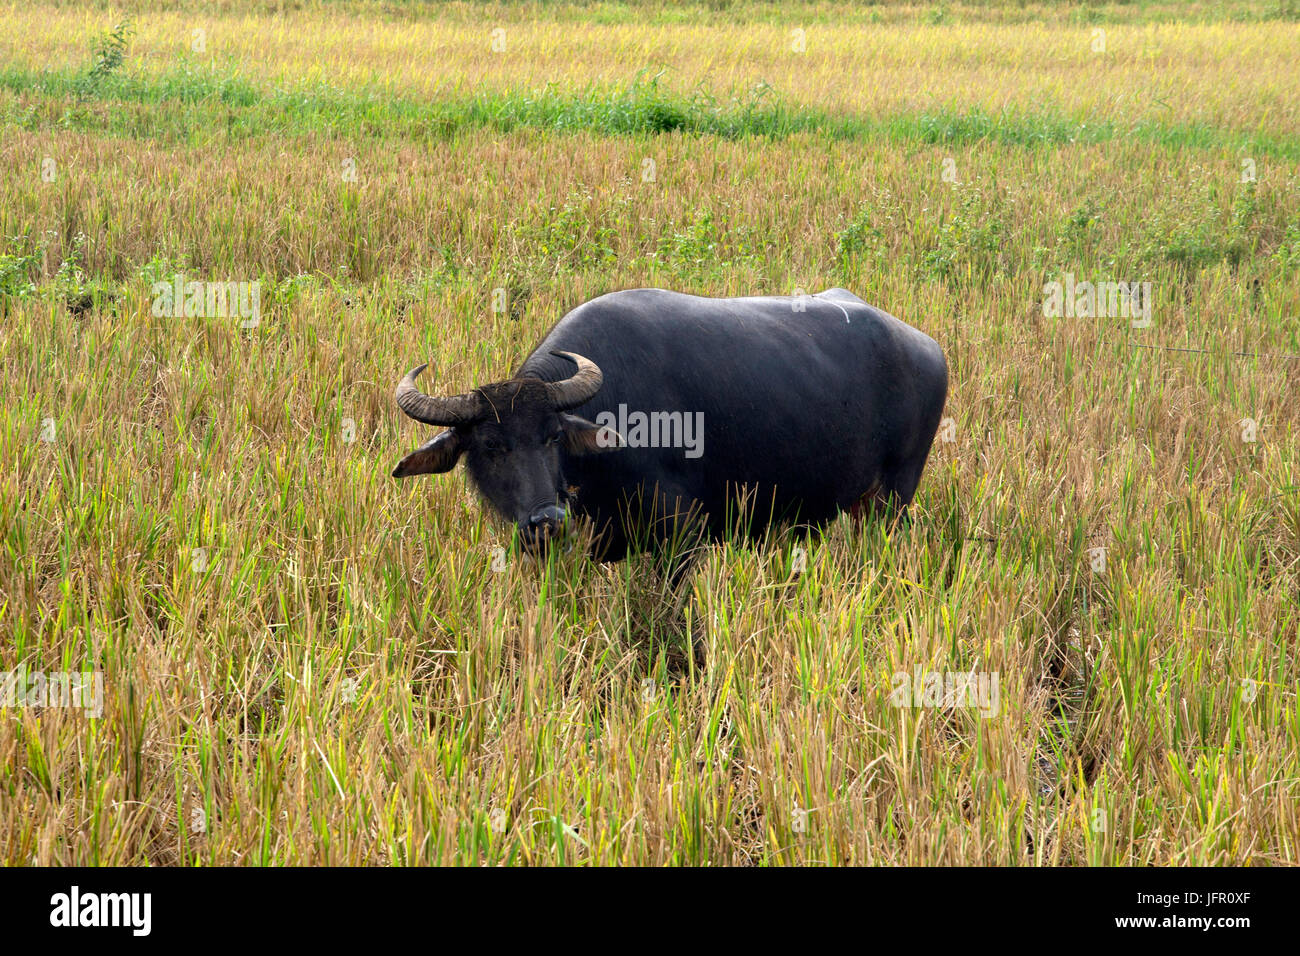 Philippine water buffalo, known as a carabao, Bubalus bubalis, in a rice paddy field, Bohol Island, Philippines - Stock Image